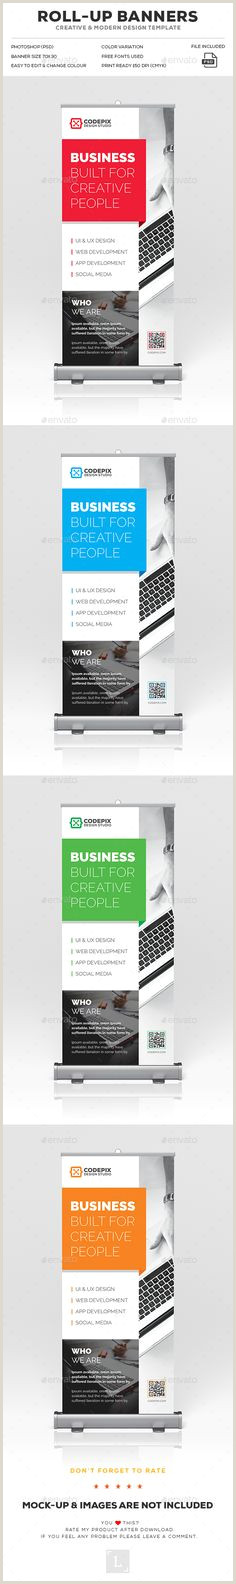 Pop Up Banner Ideas 100 Best Roll Up Images